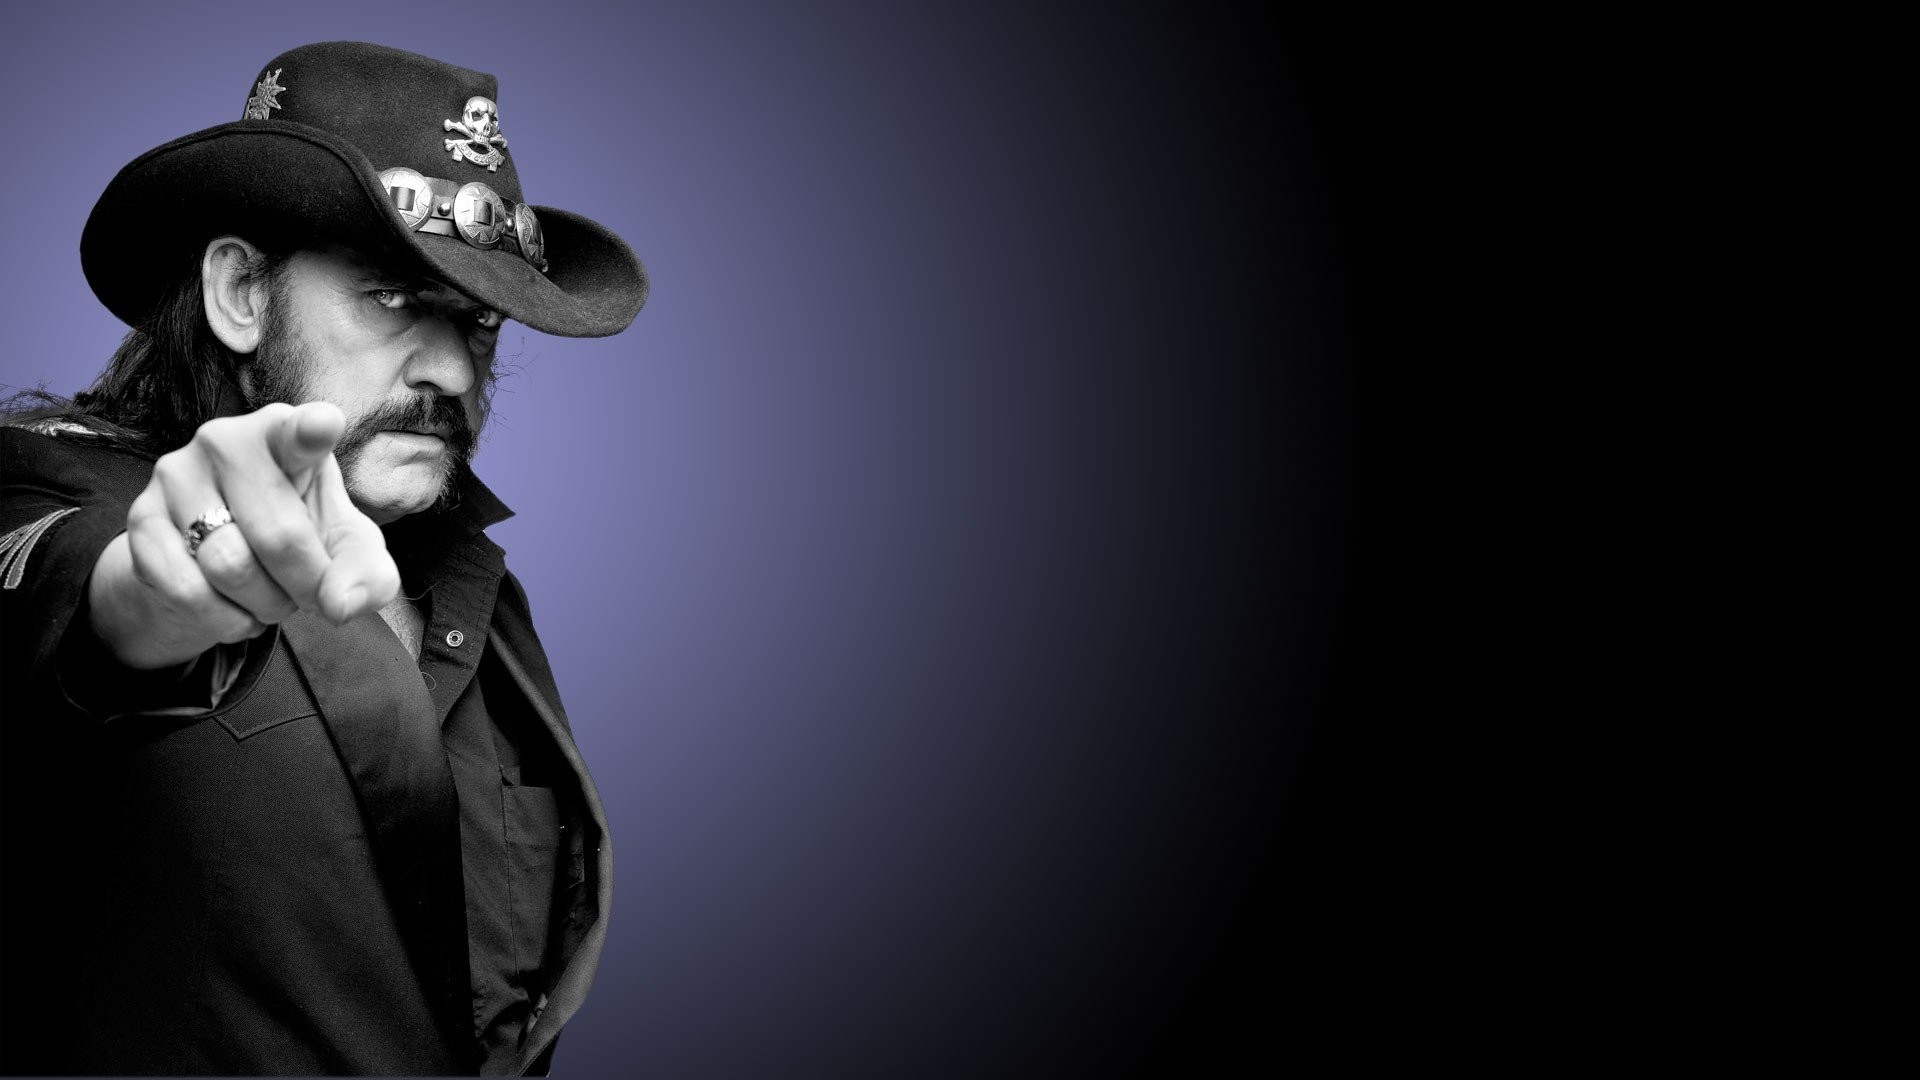 Motorhead Lemmy Killmister wallpaper | | 256545 .